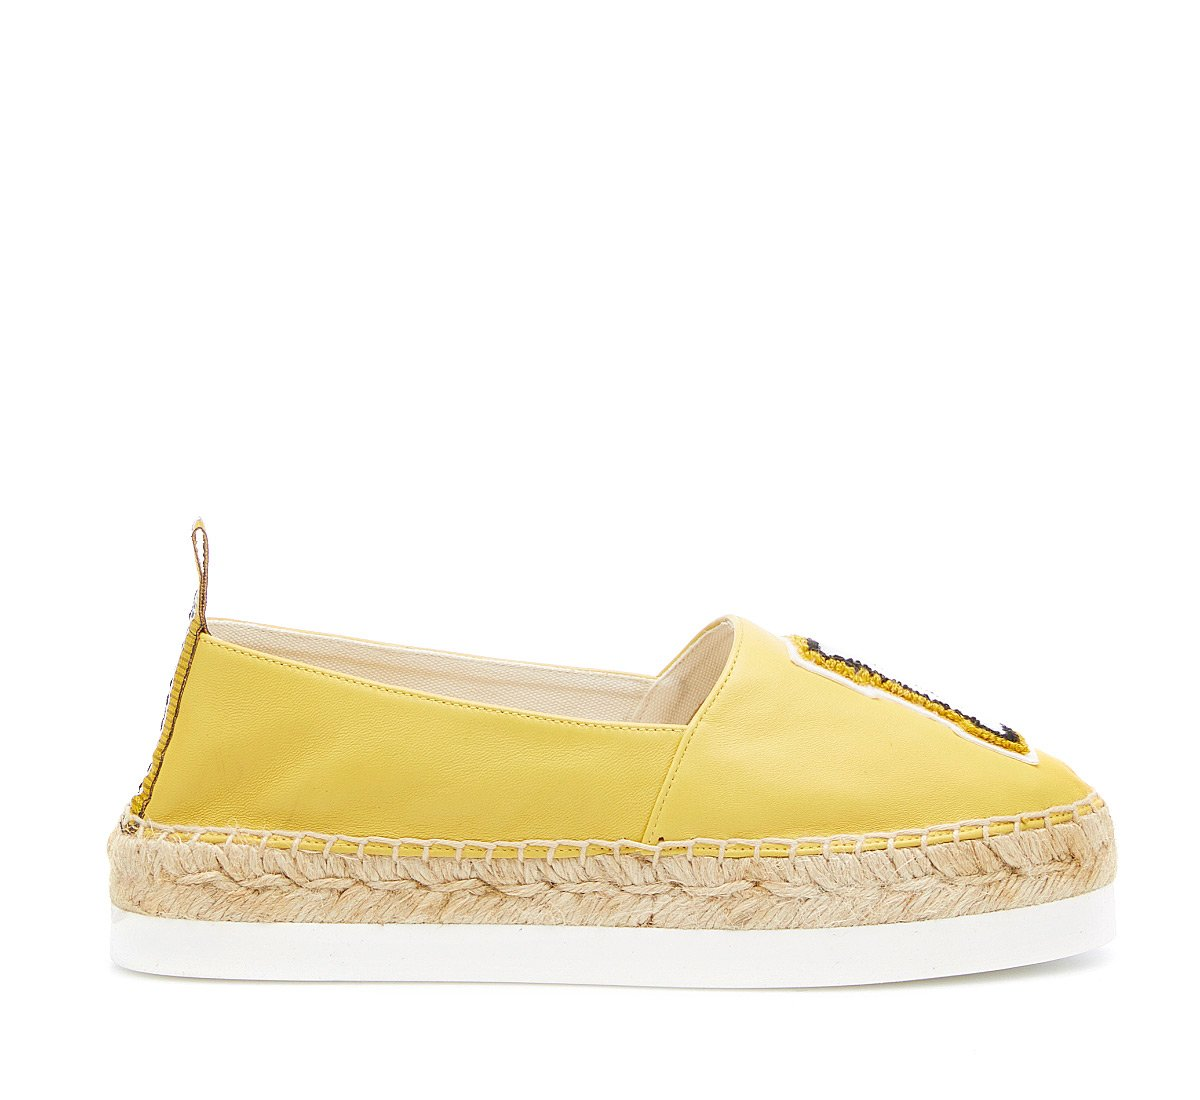 Espadrilles in preppy style